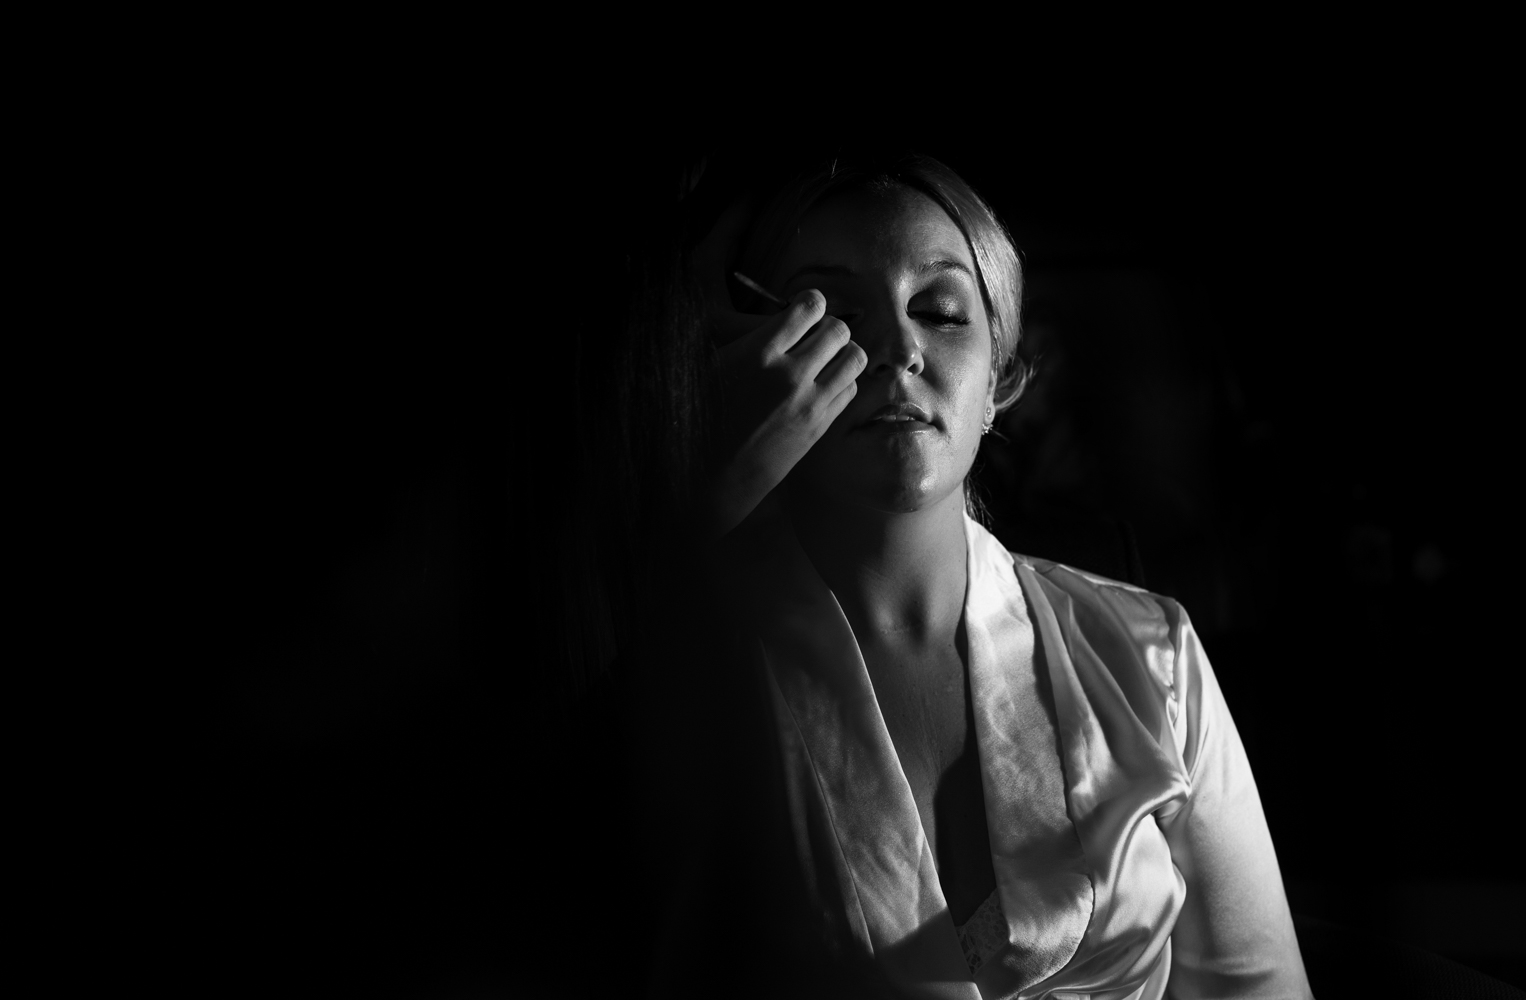 A black and white photograph of the bride during her makeup